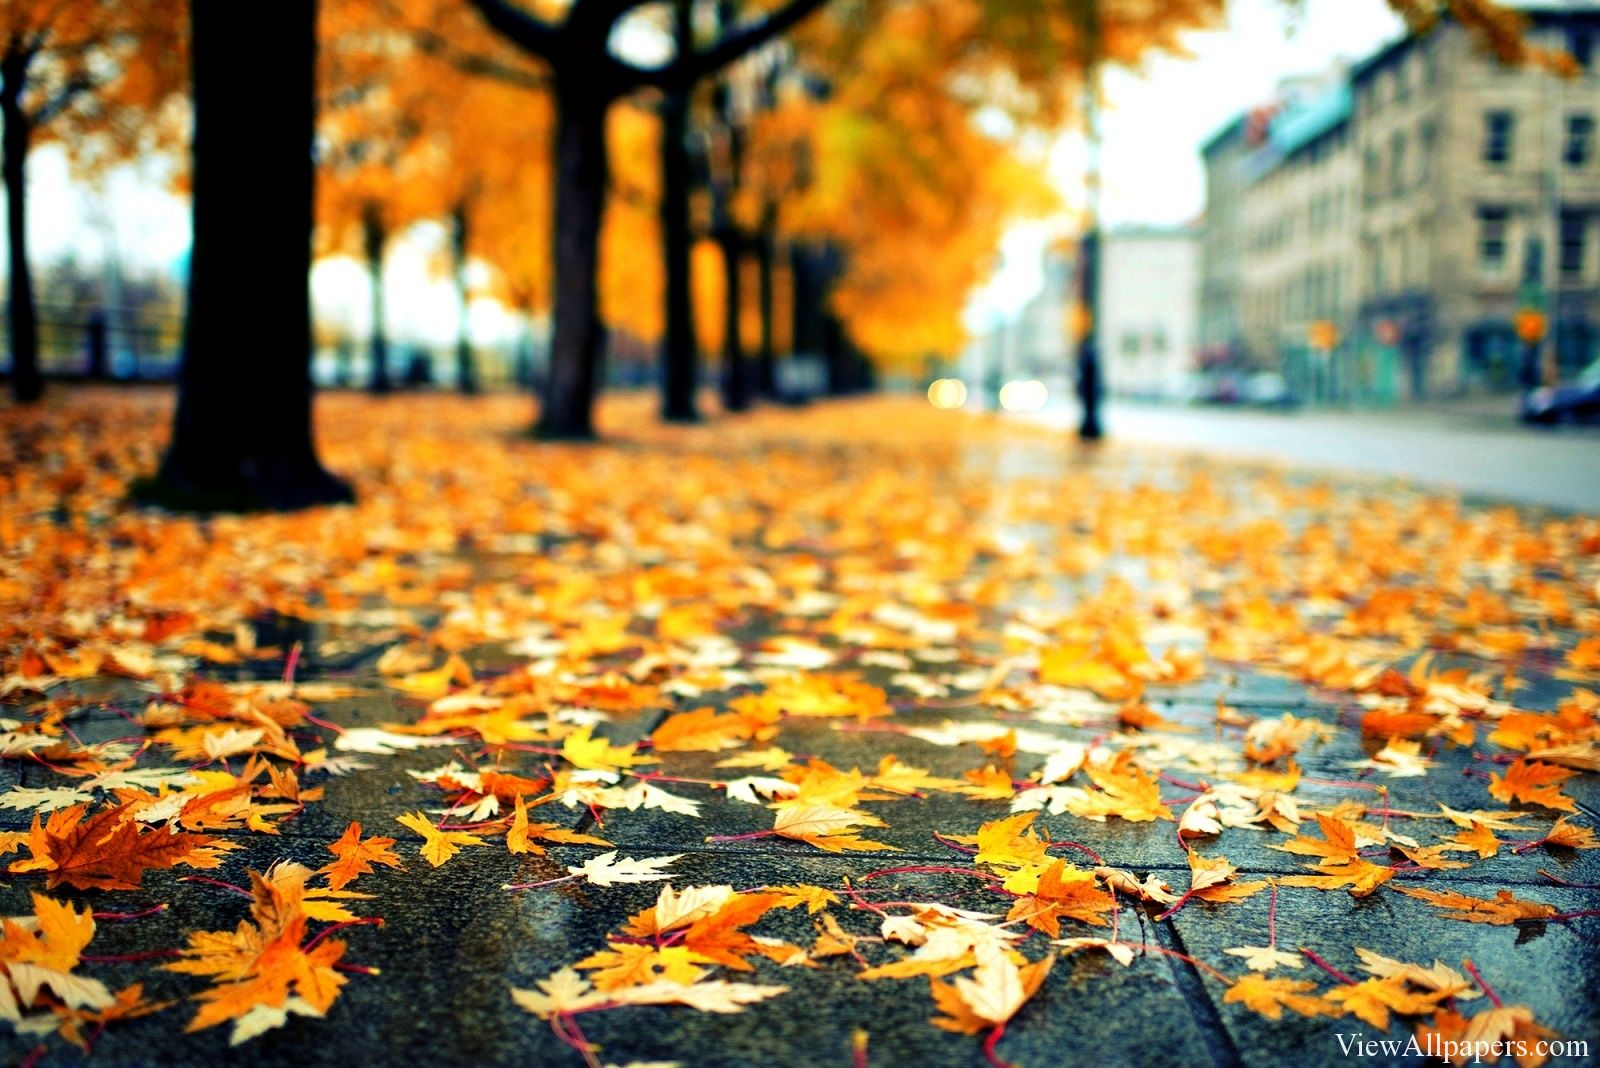 Rainy Autumn Leaves Hd Wallpapers Hd Wallpapers Rain Wallpapers Dry Leaf Desktop Wallpapers Backgrounds